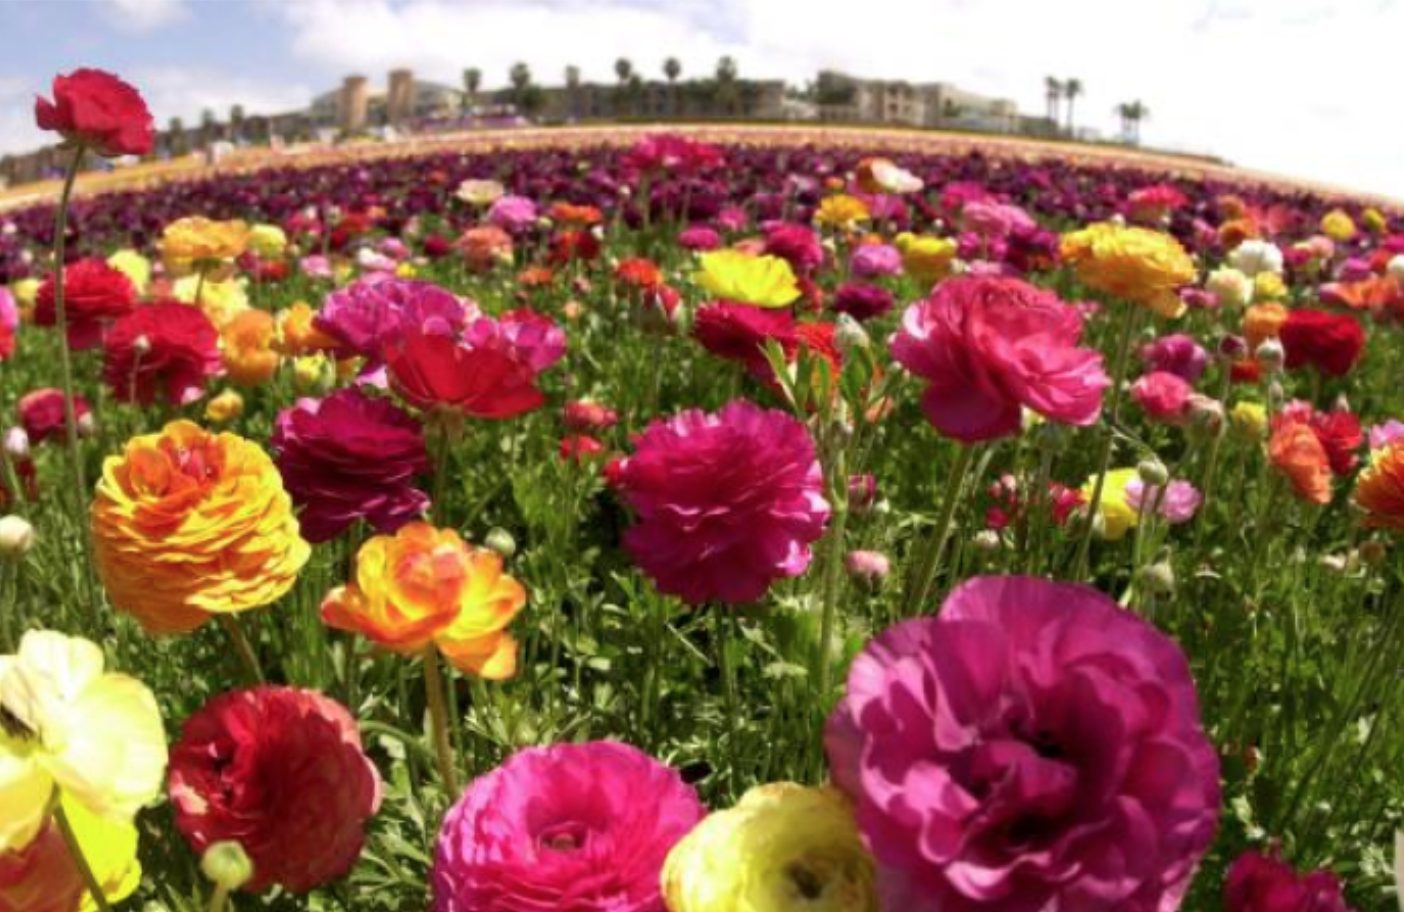 close up of a field of flowers